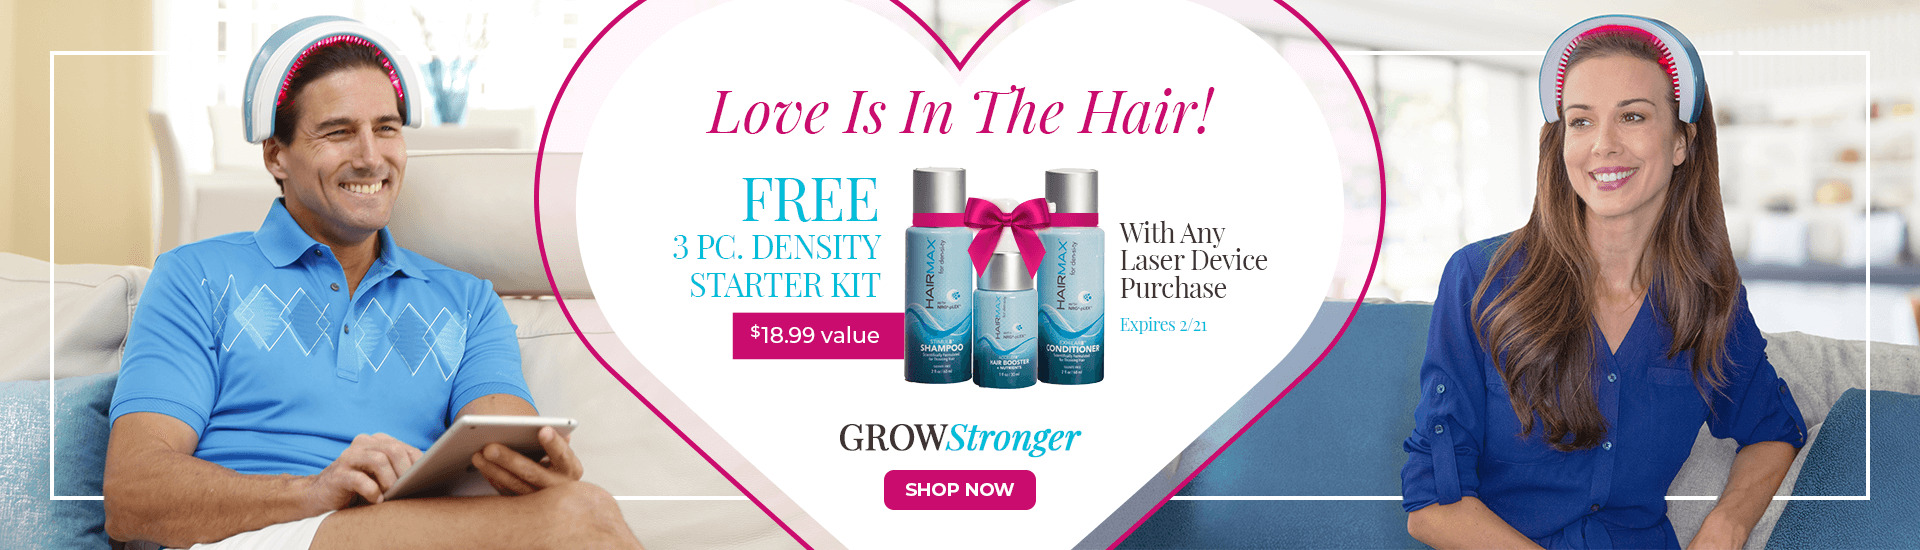 Love is in the Air - Grow Stronger Offer